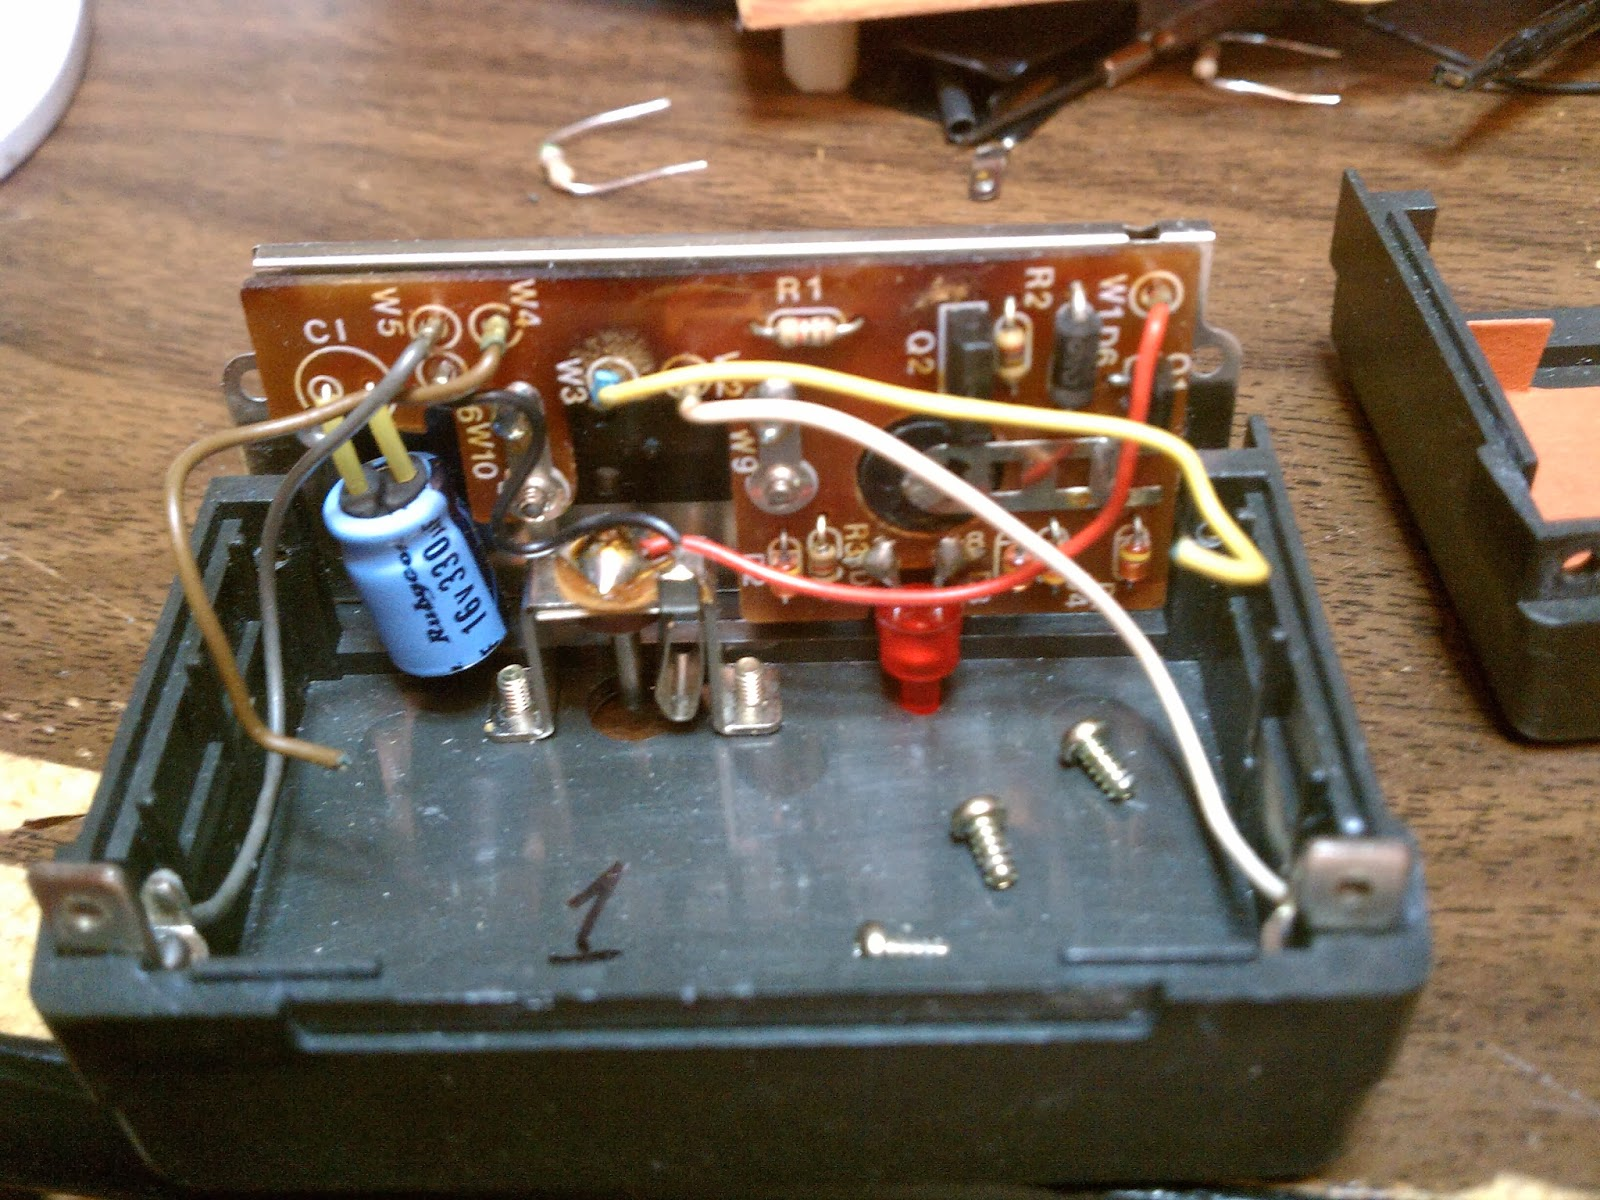 Icom Ic 2at Battery Eliminator The Kodetroll Spot Circuit Pictures This Is Removed 7 Cell Nicad Pack Particular One An Aftermarket Replacement Indicating That Has Been Rebuilt At Least